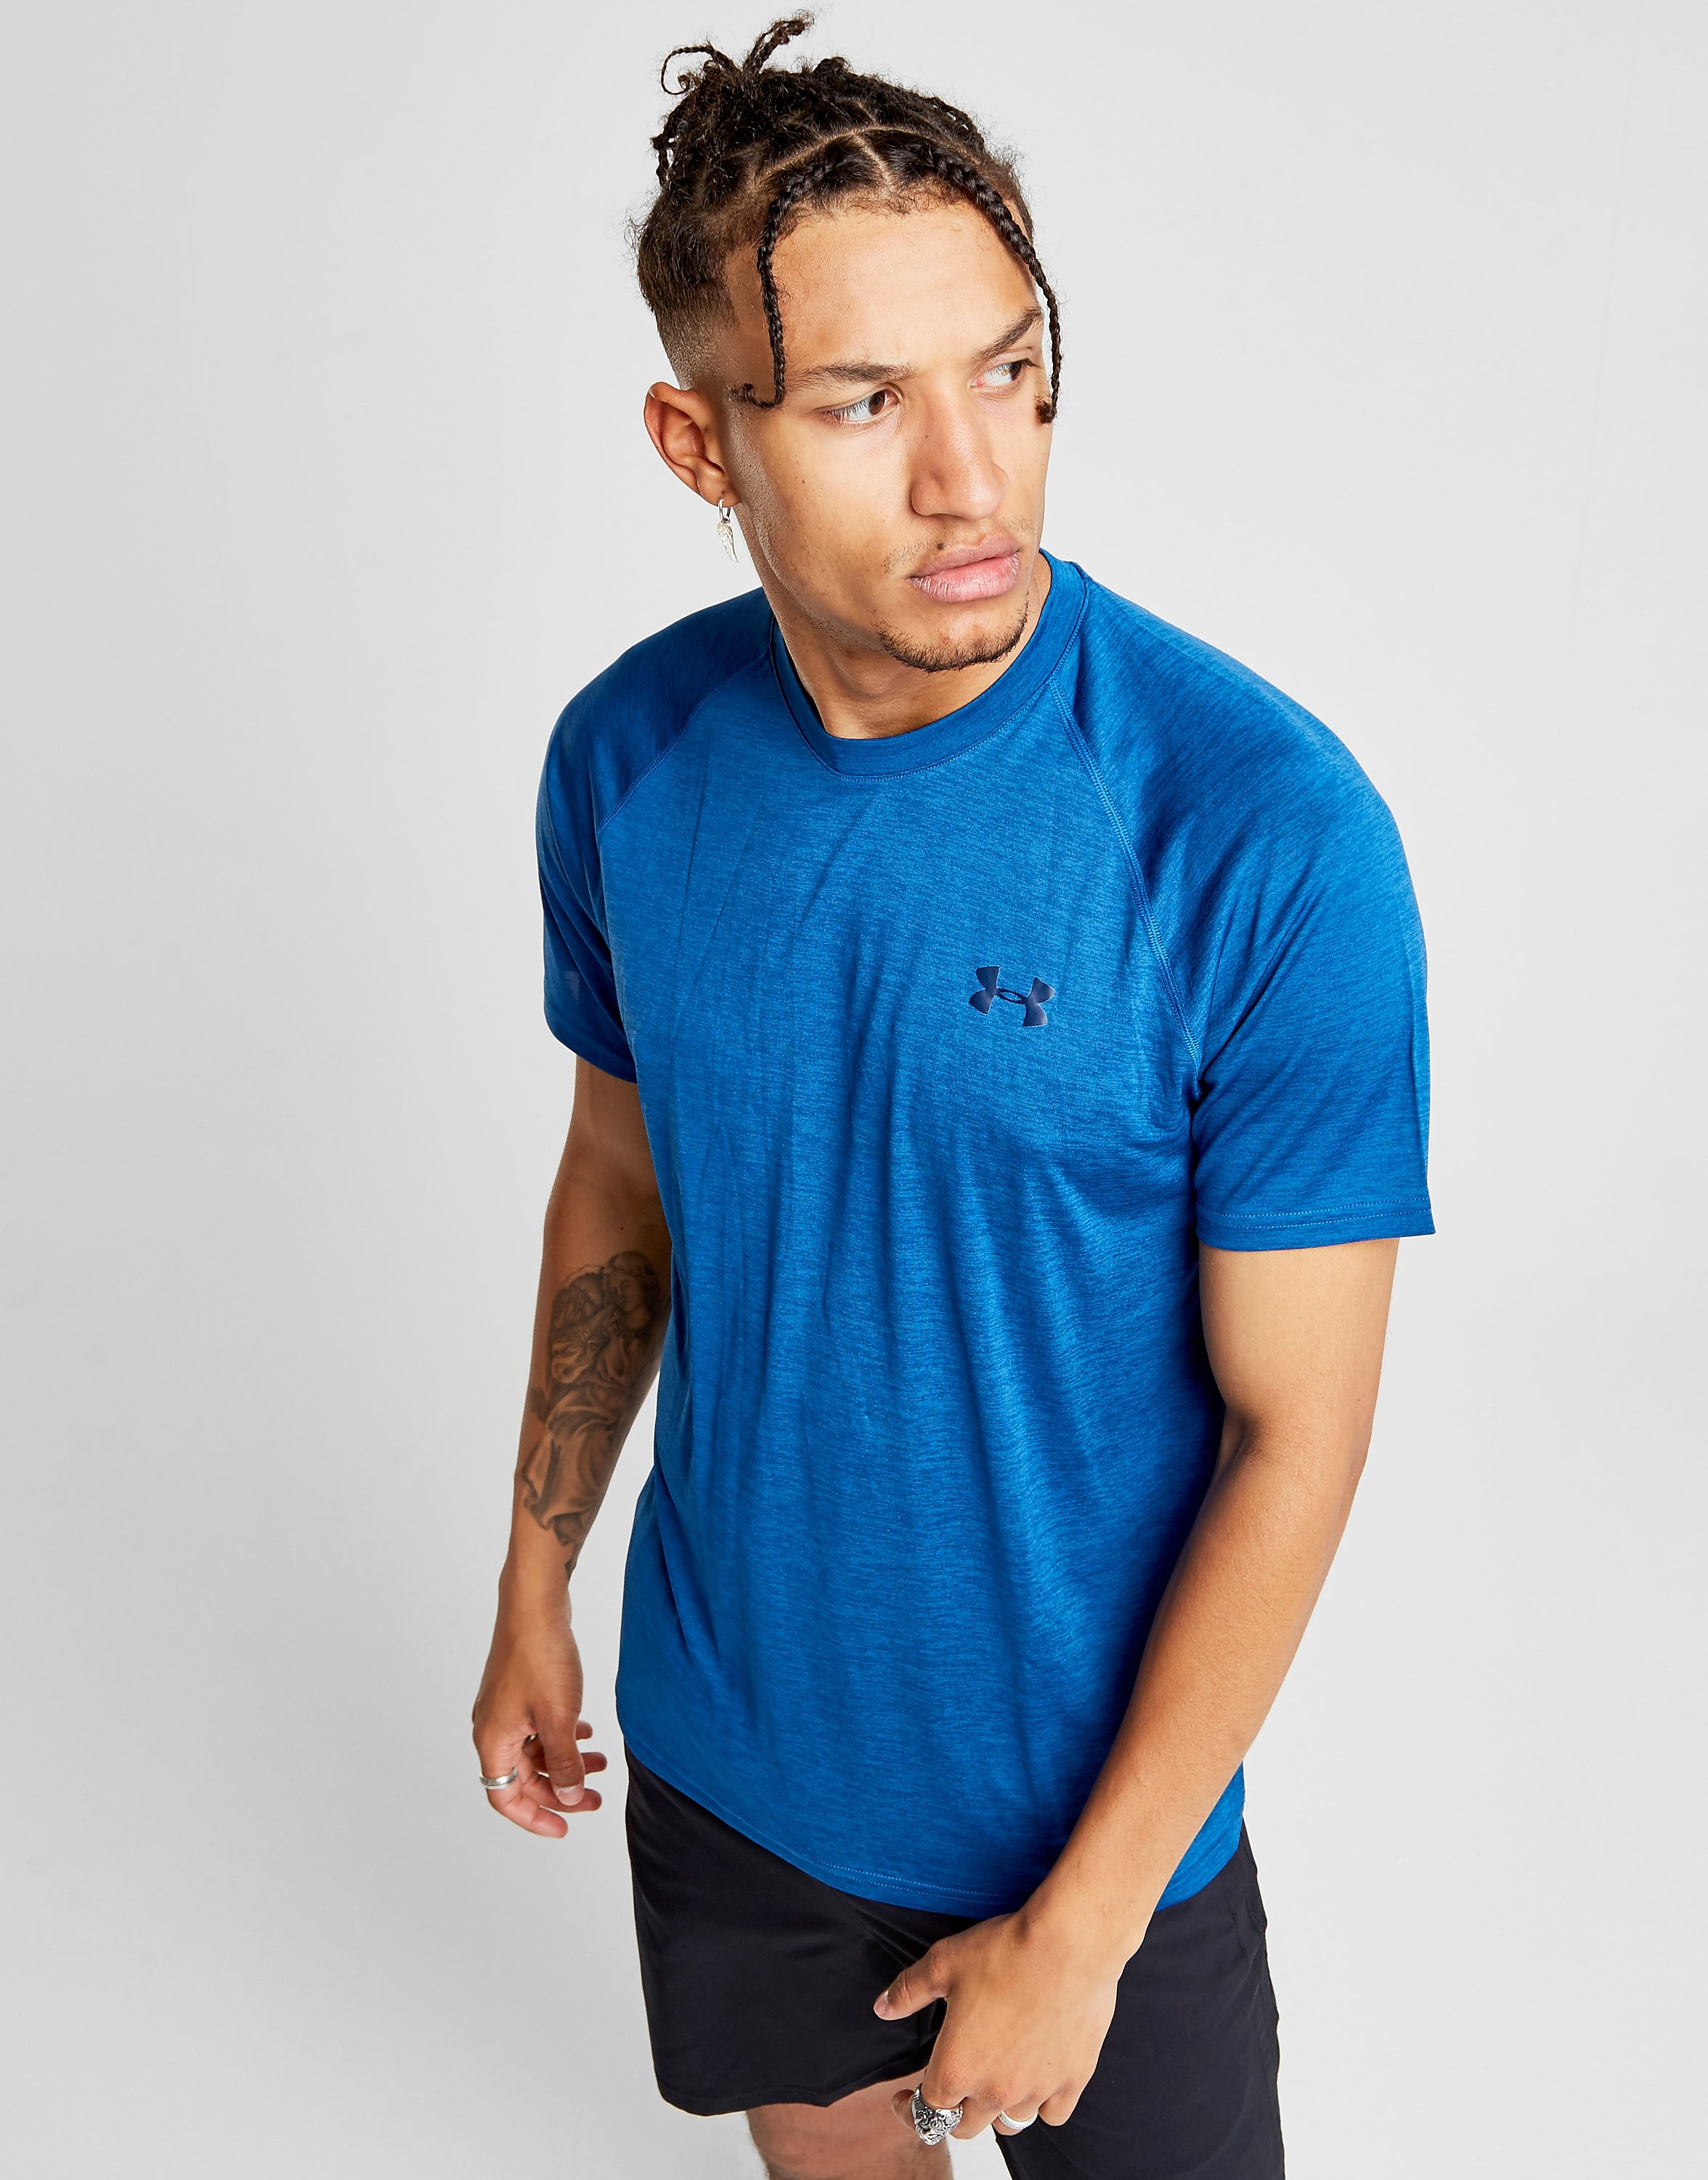 Under Armour camiseta Tech Twist